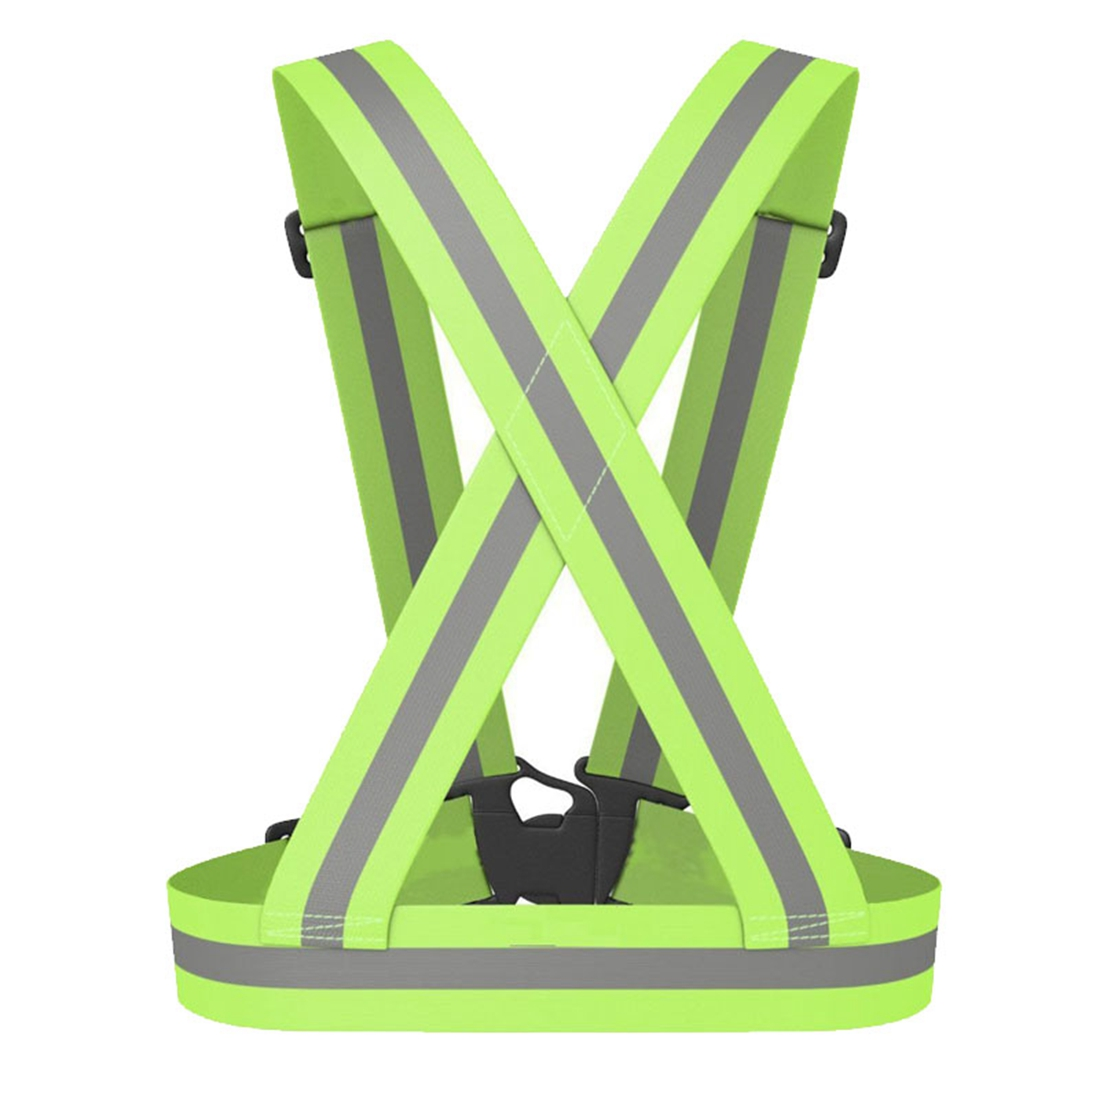 MOOL Reflective Safety Vest Reflective Belt Visibility Cross Belt Band Harness Belt Waist Belt, Green belt husky belt